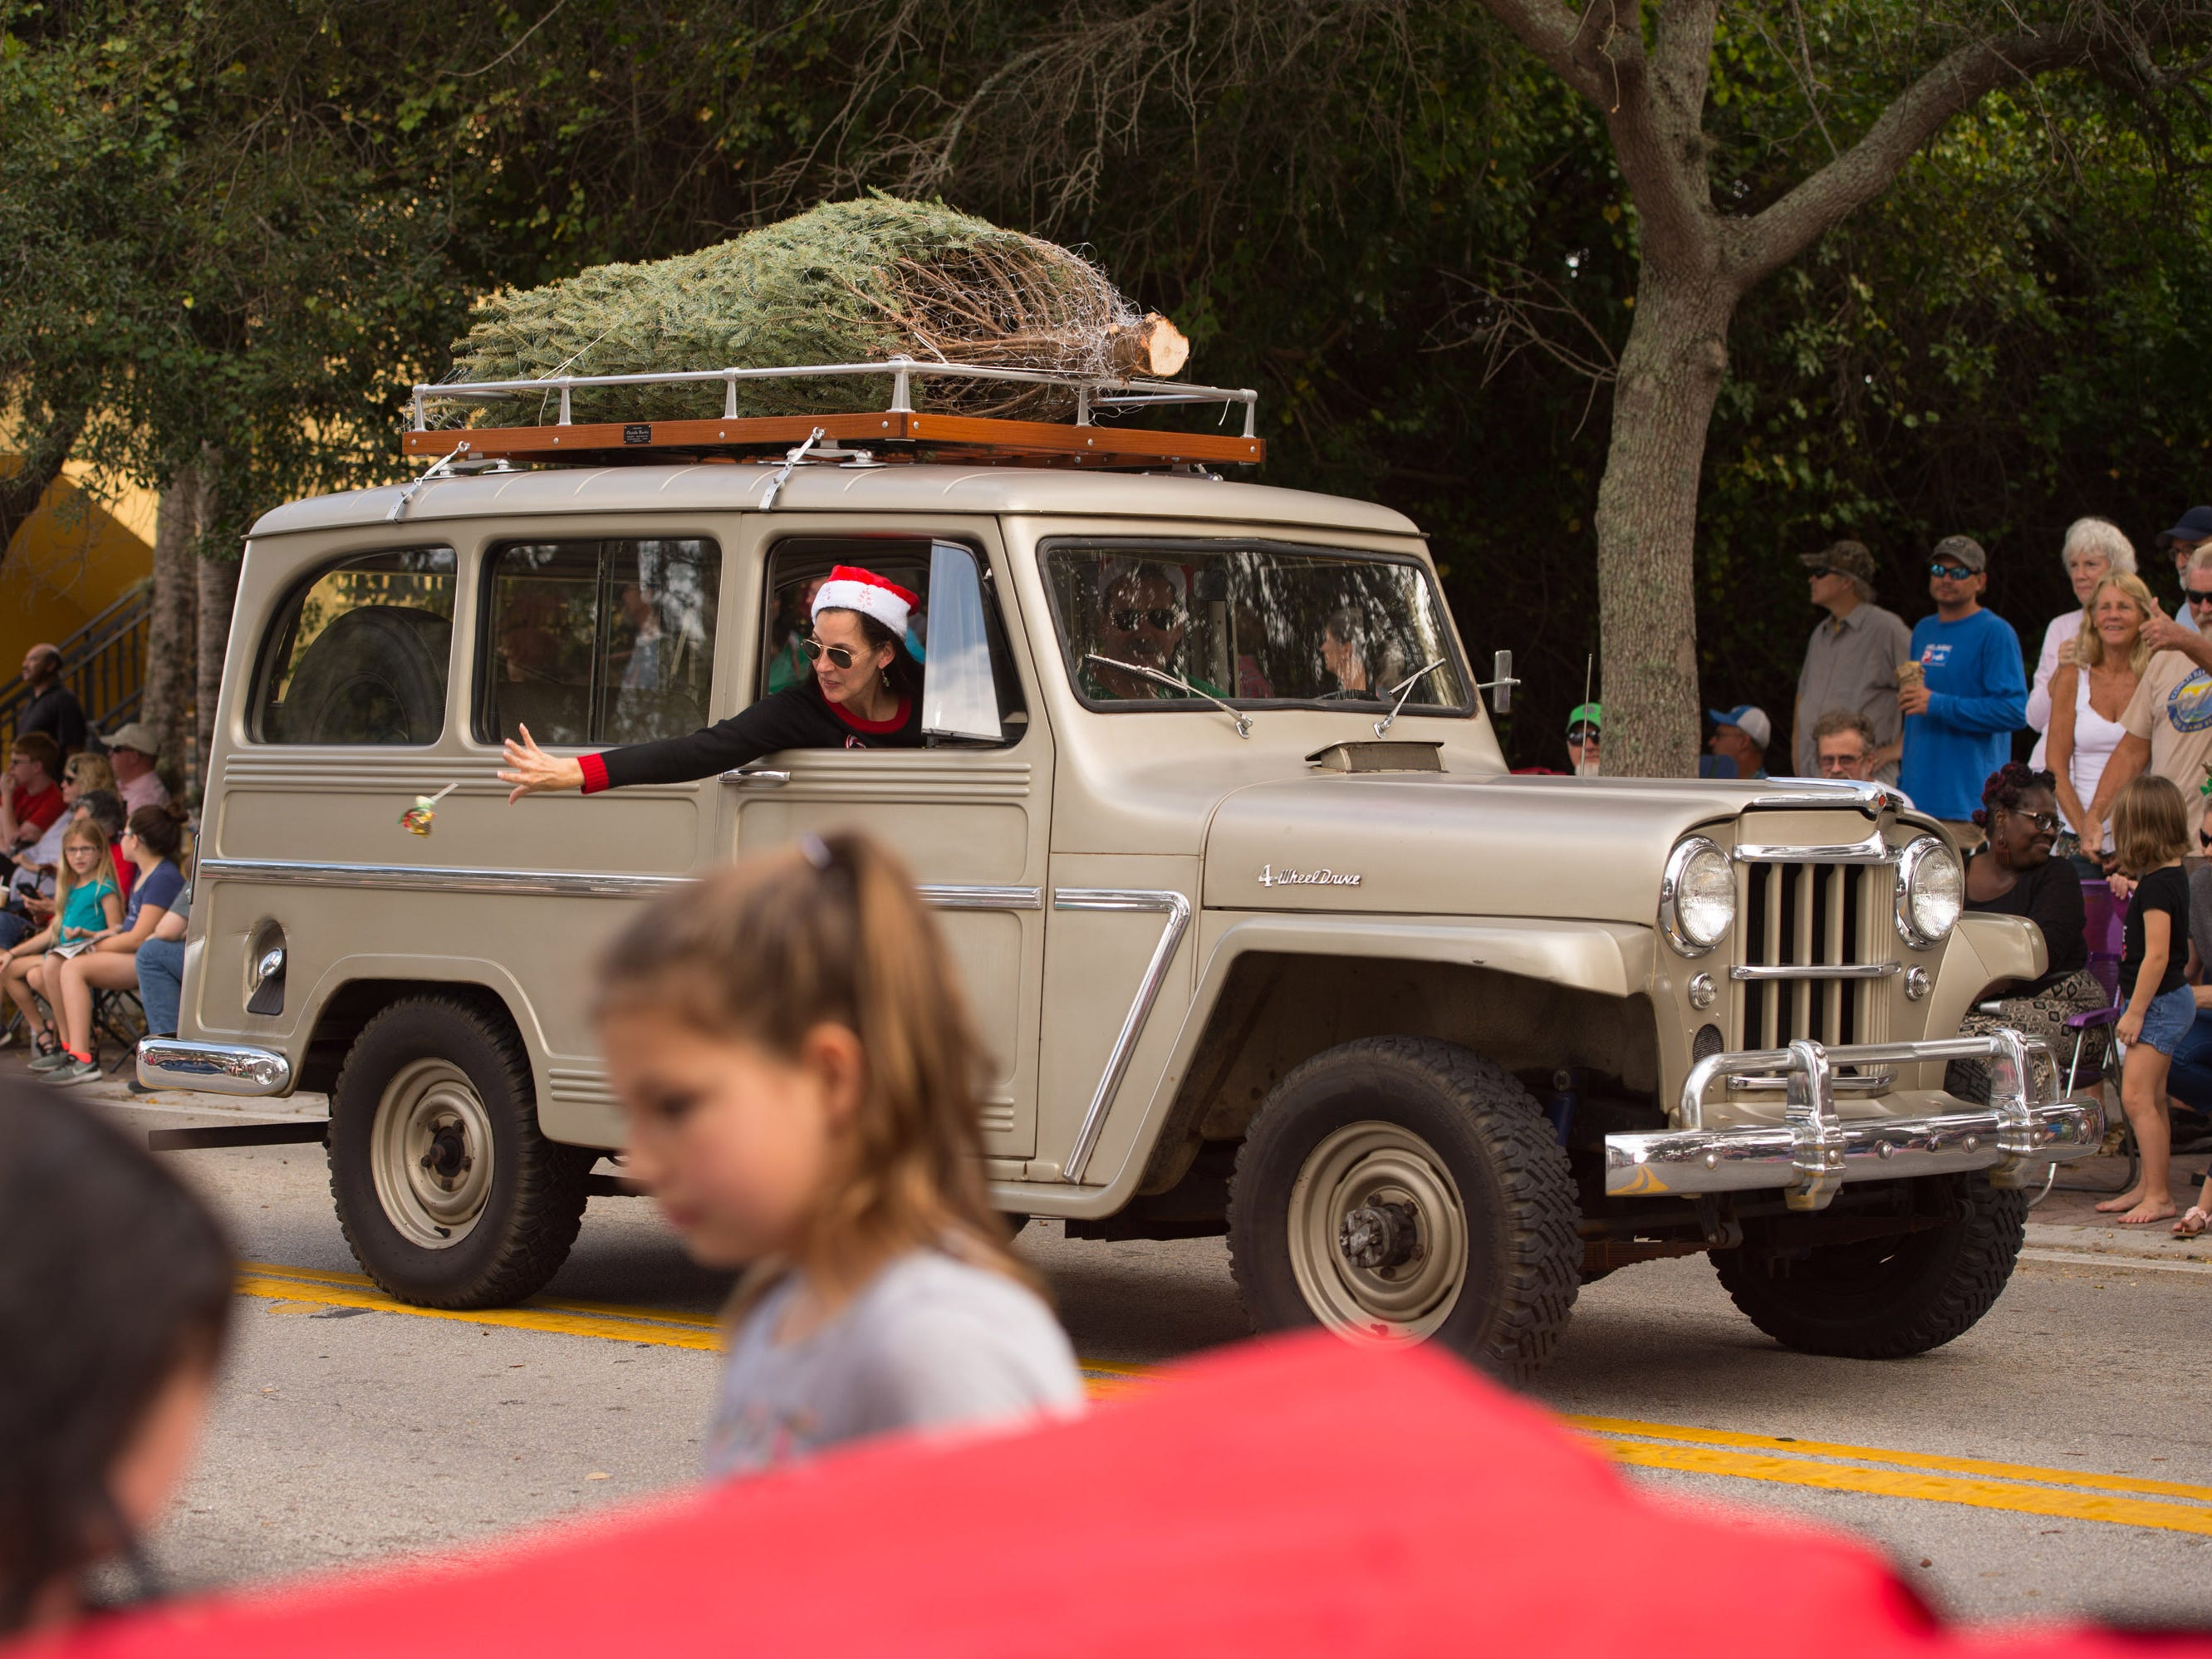 The 33rd annual Hobe Sound Christmas Parade was held Saturday, Dec. 1, 2018 in Hobe Sound.